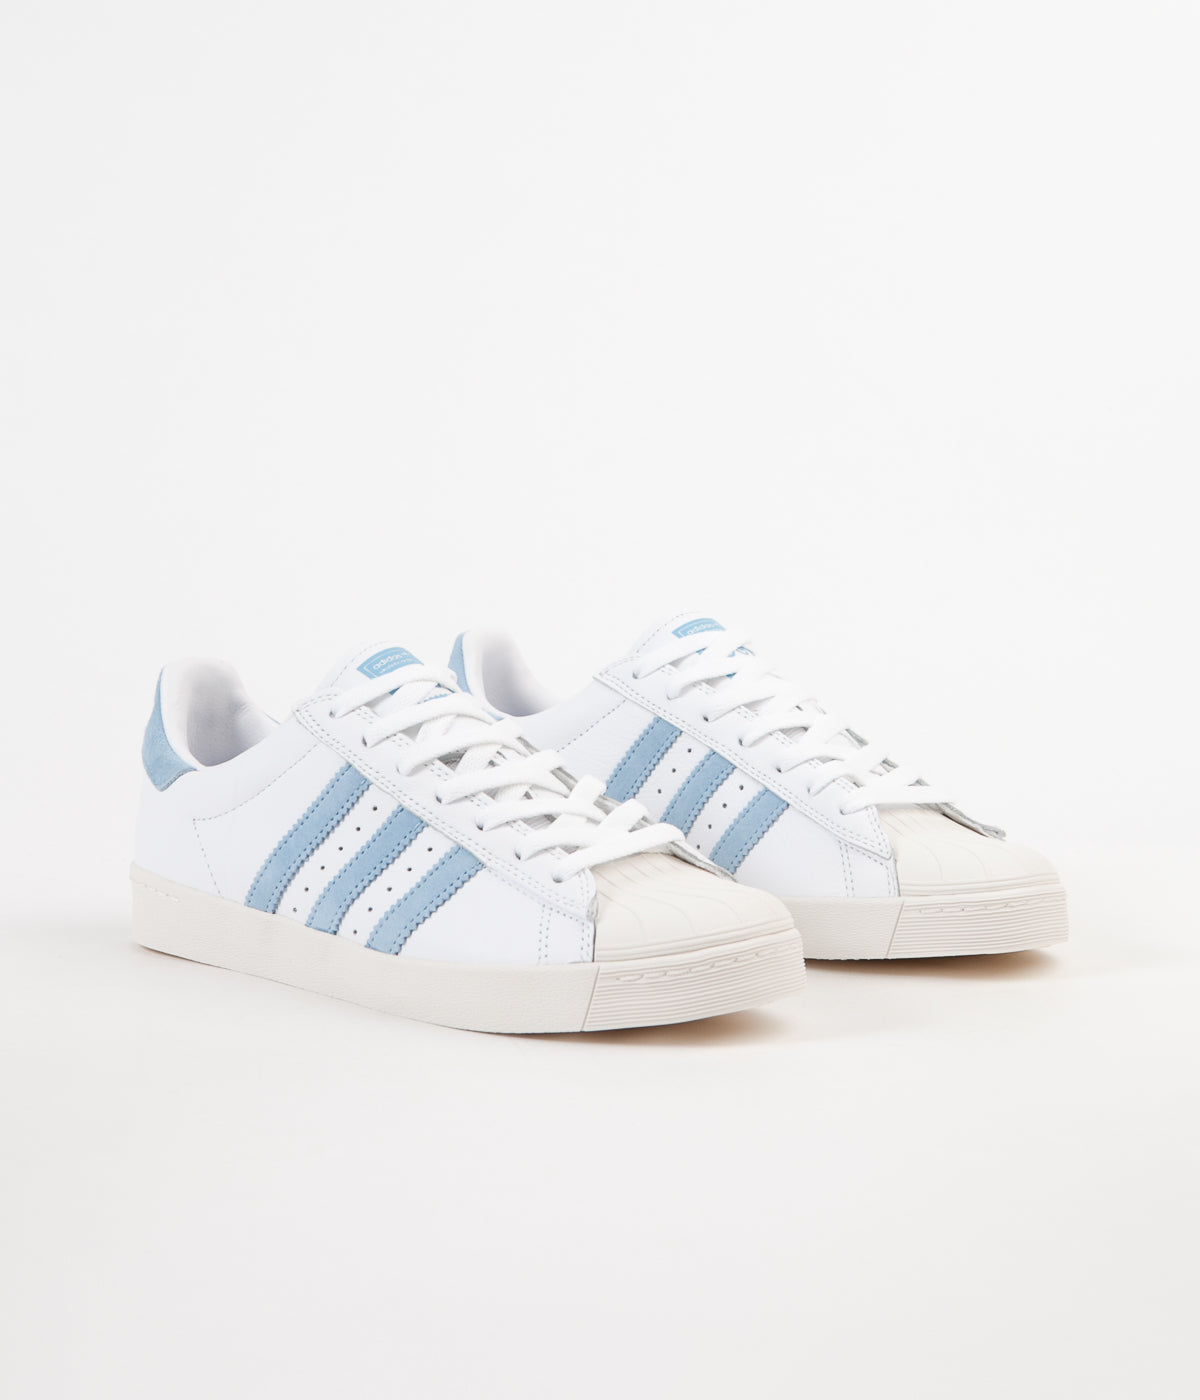 Adidas x Krooked Superstar Vulc Shoes FTW White